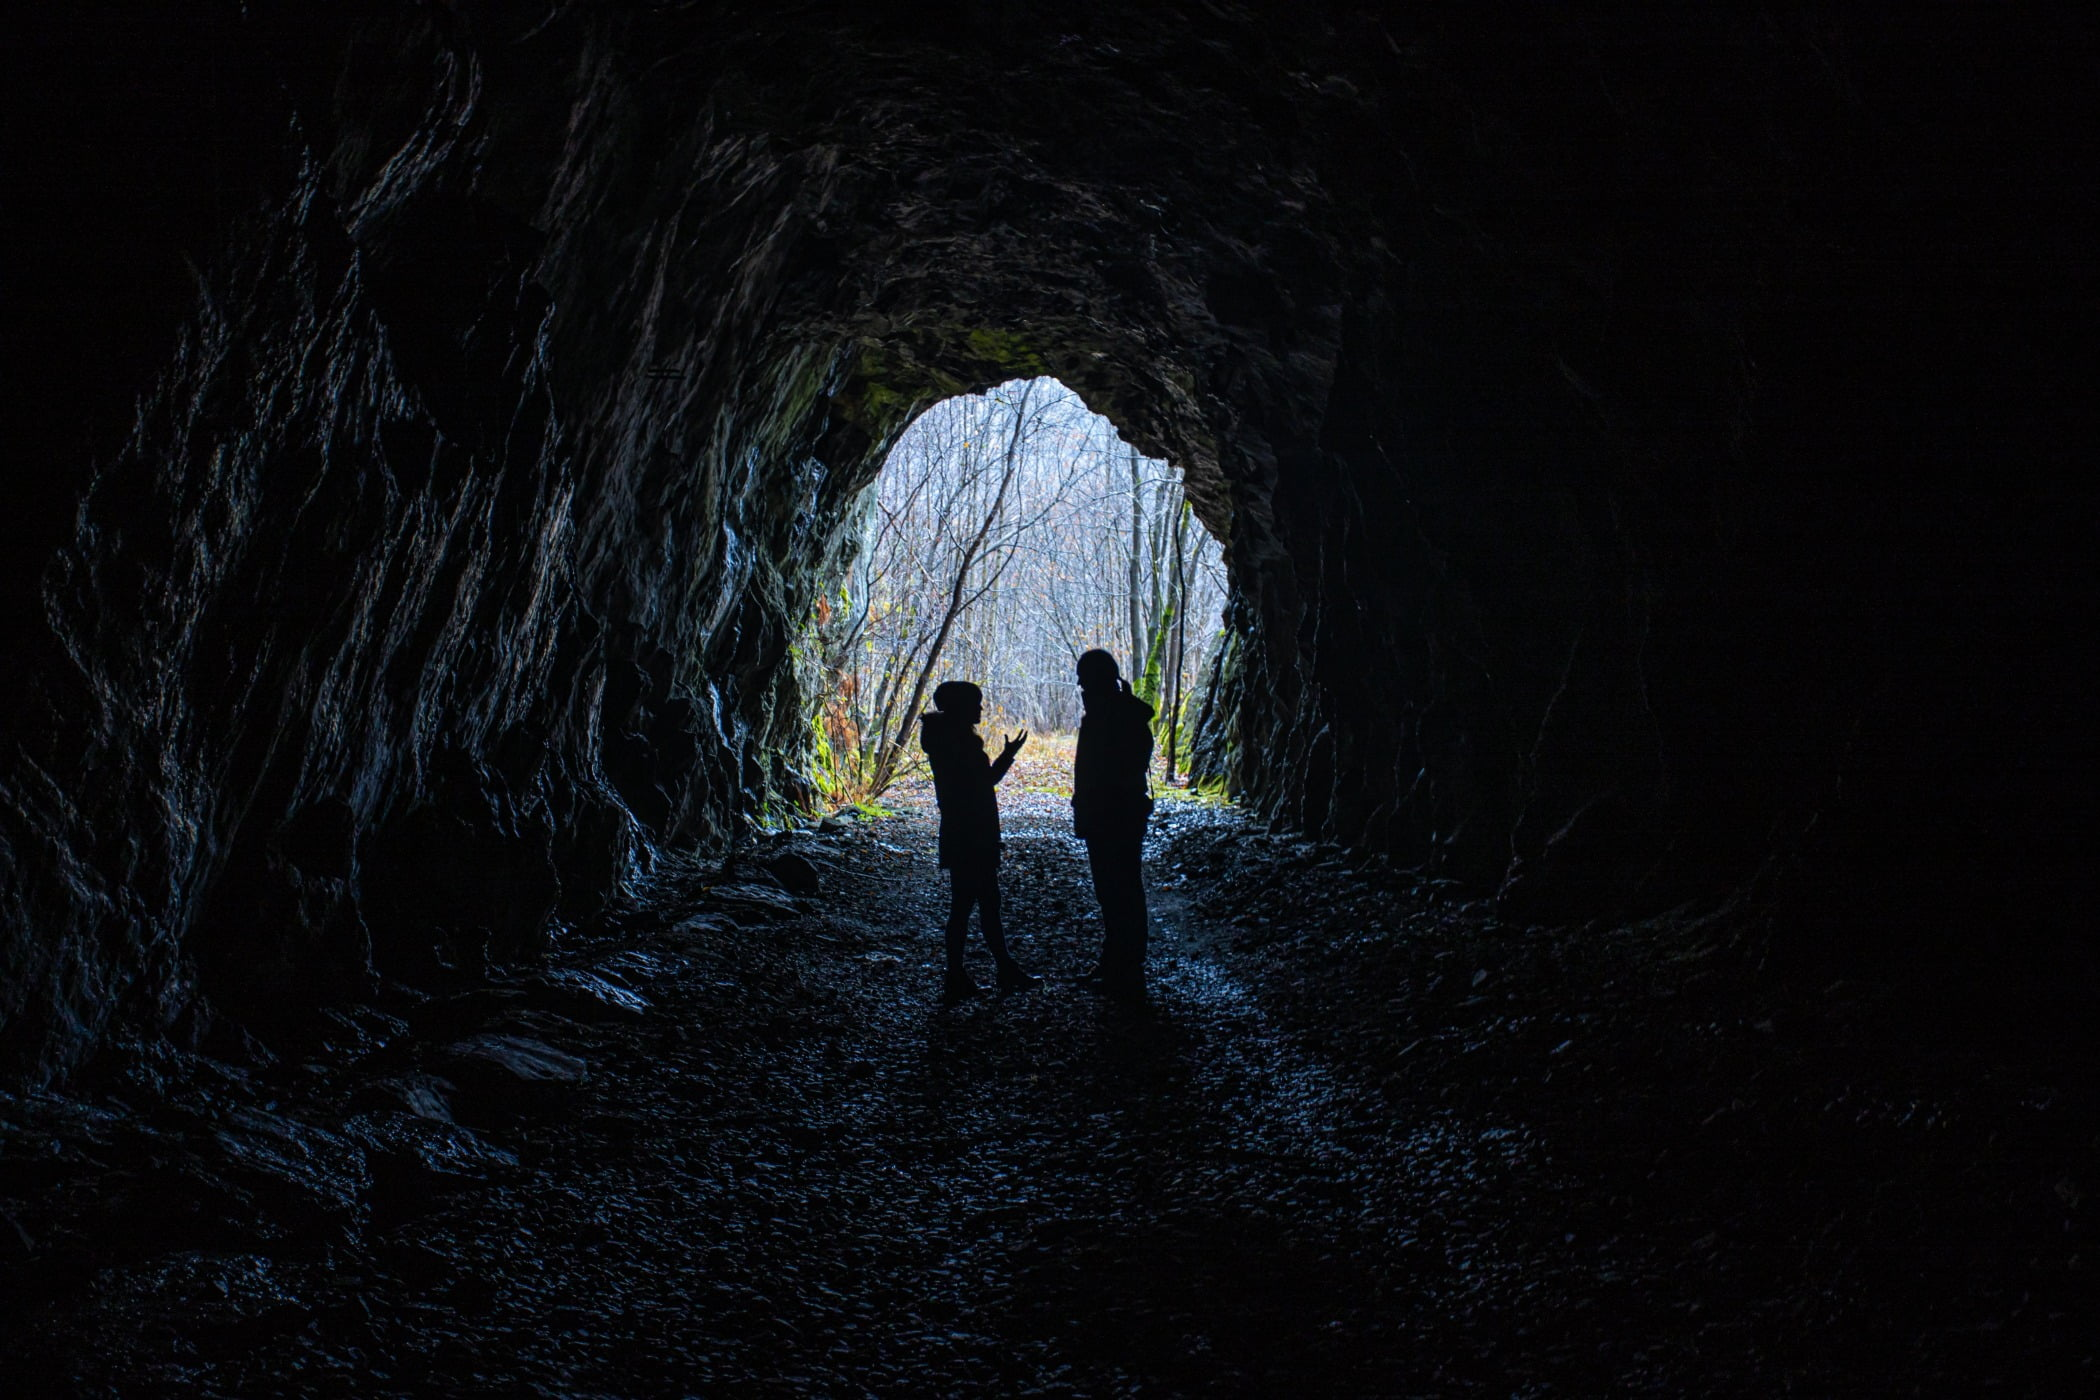 People in nature, Tunnel